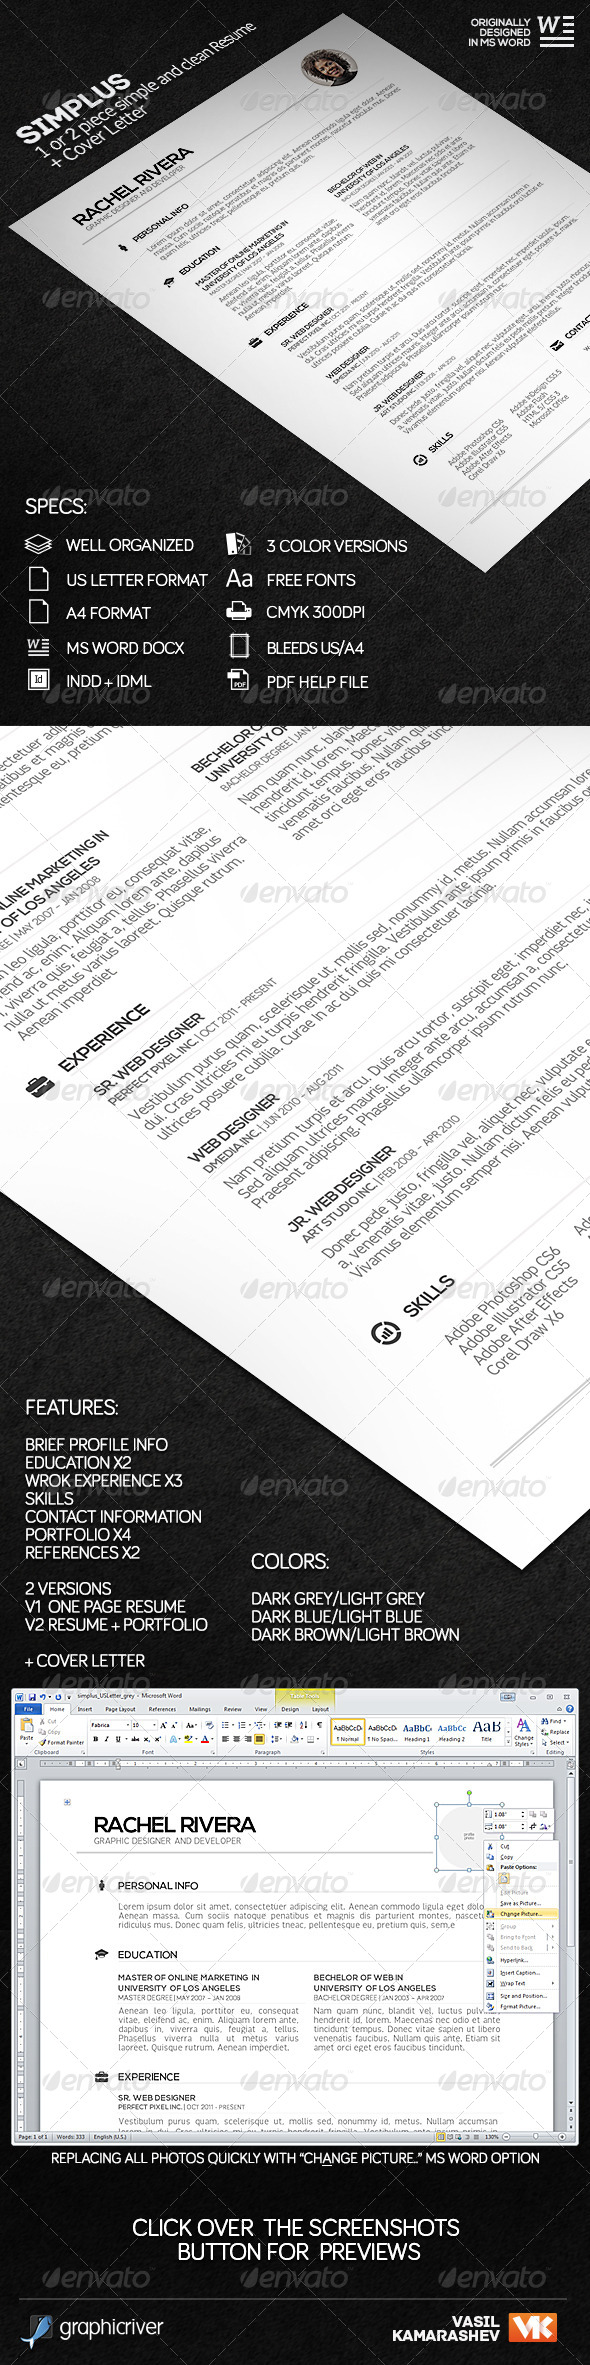 Simplus - 1 or 2 Piece Simple and Clean Resume